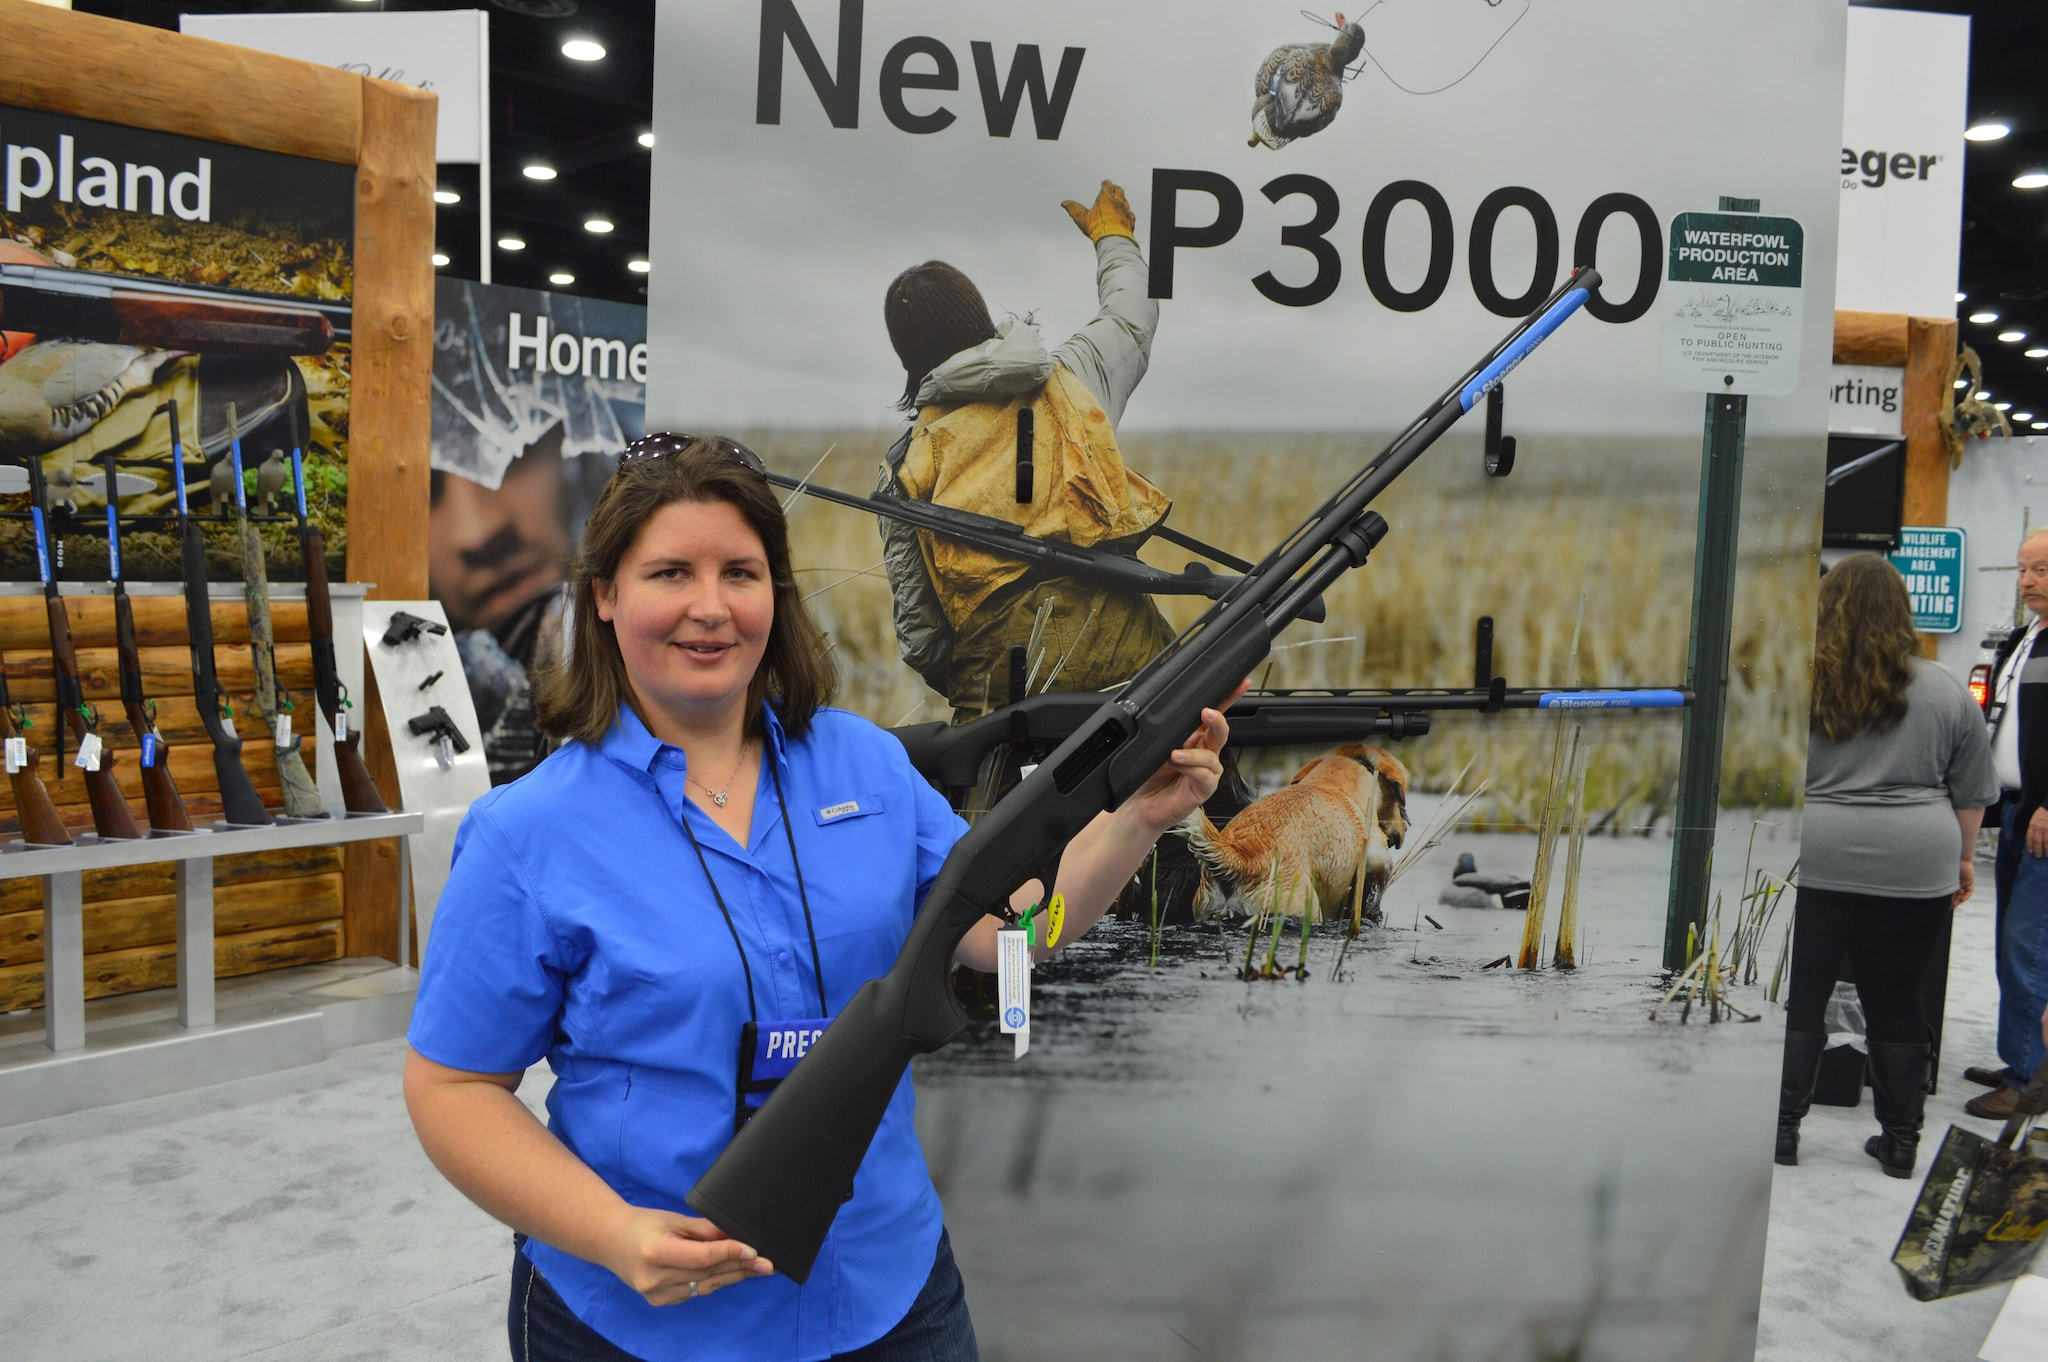 Stoeger's P3000 pump-action 12-gauge is priced to steal the market at $299 retail.